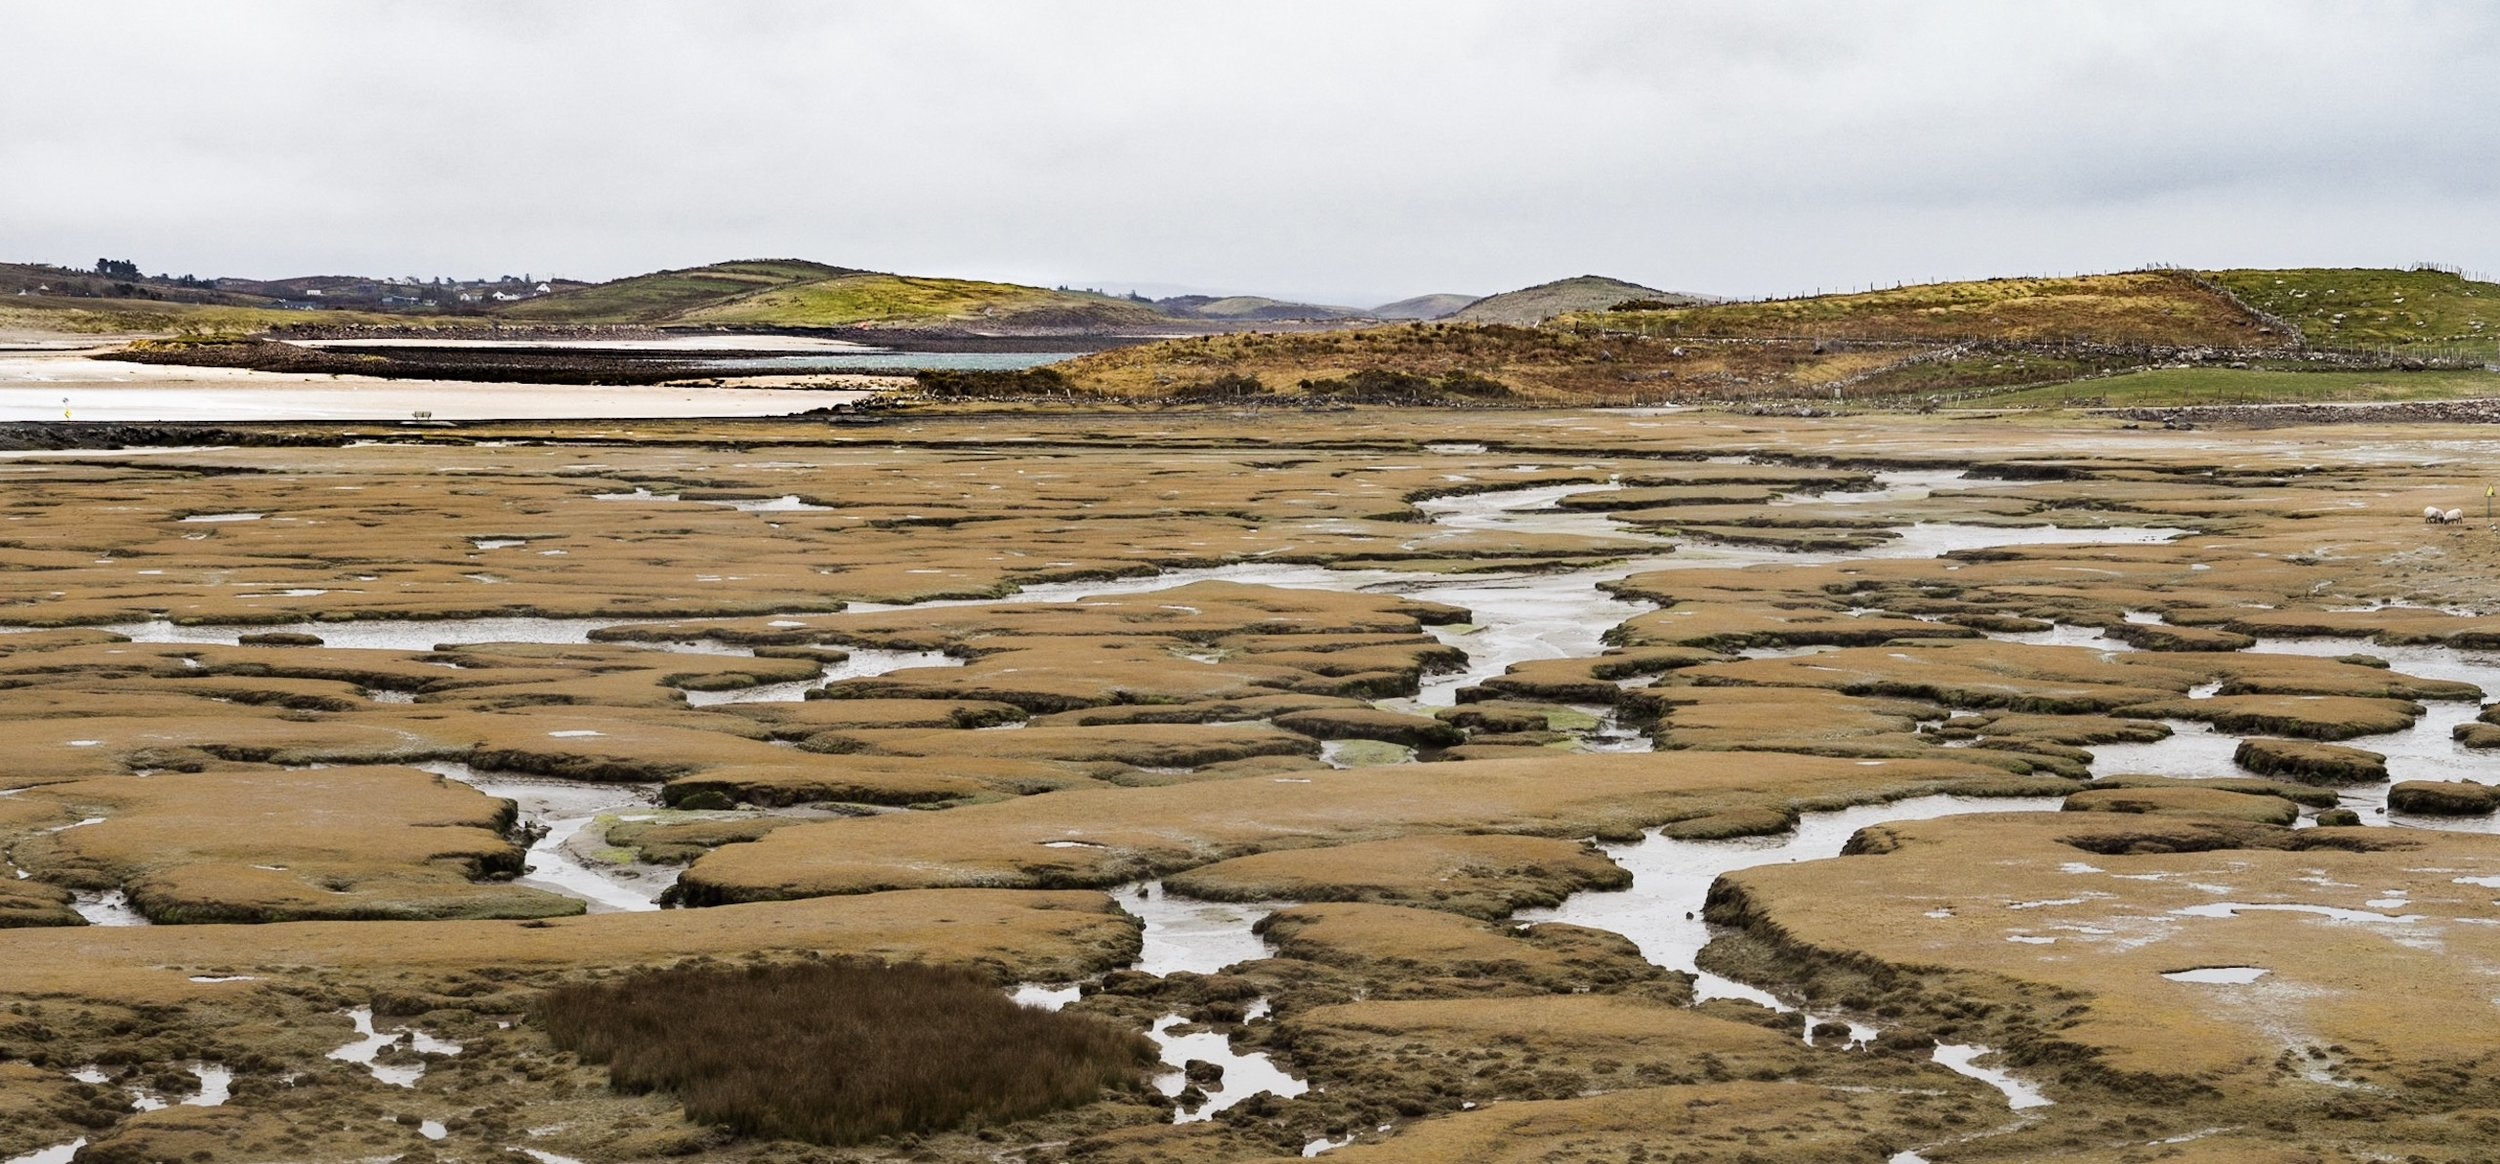 Nearing Achill Island in Ireland, a little unplanned detour off the main road brought us to the edge of a tidal marsh